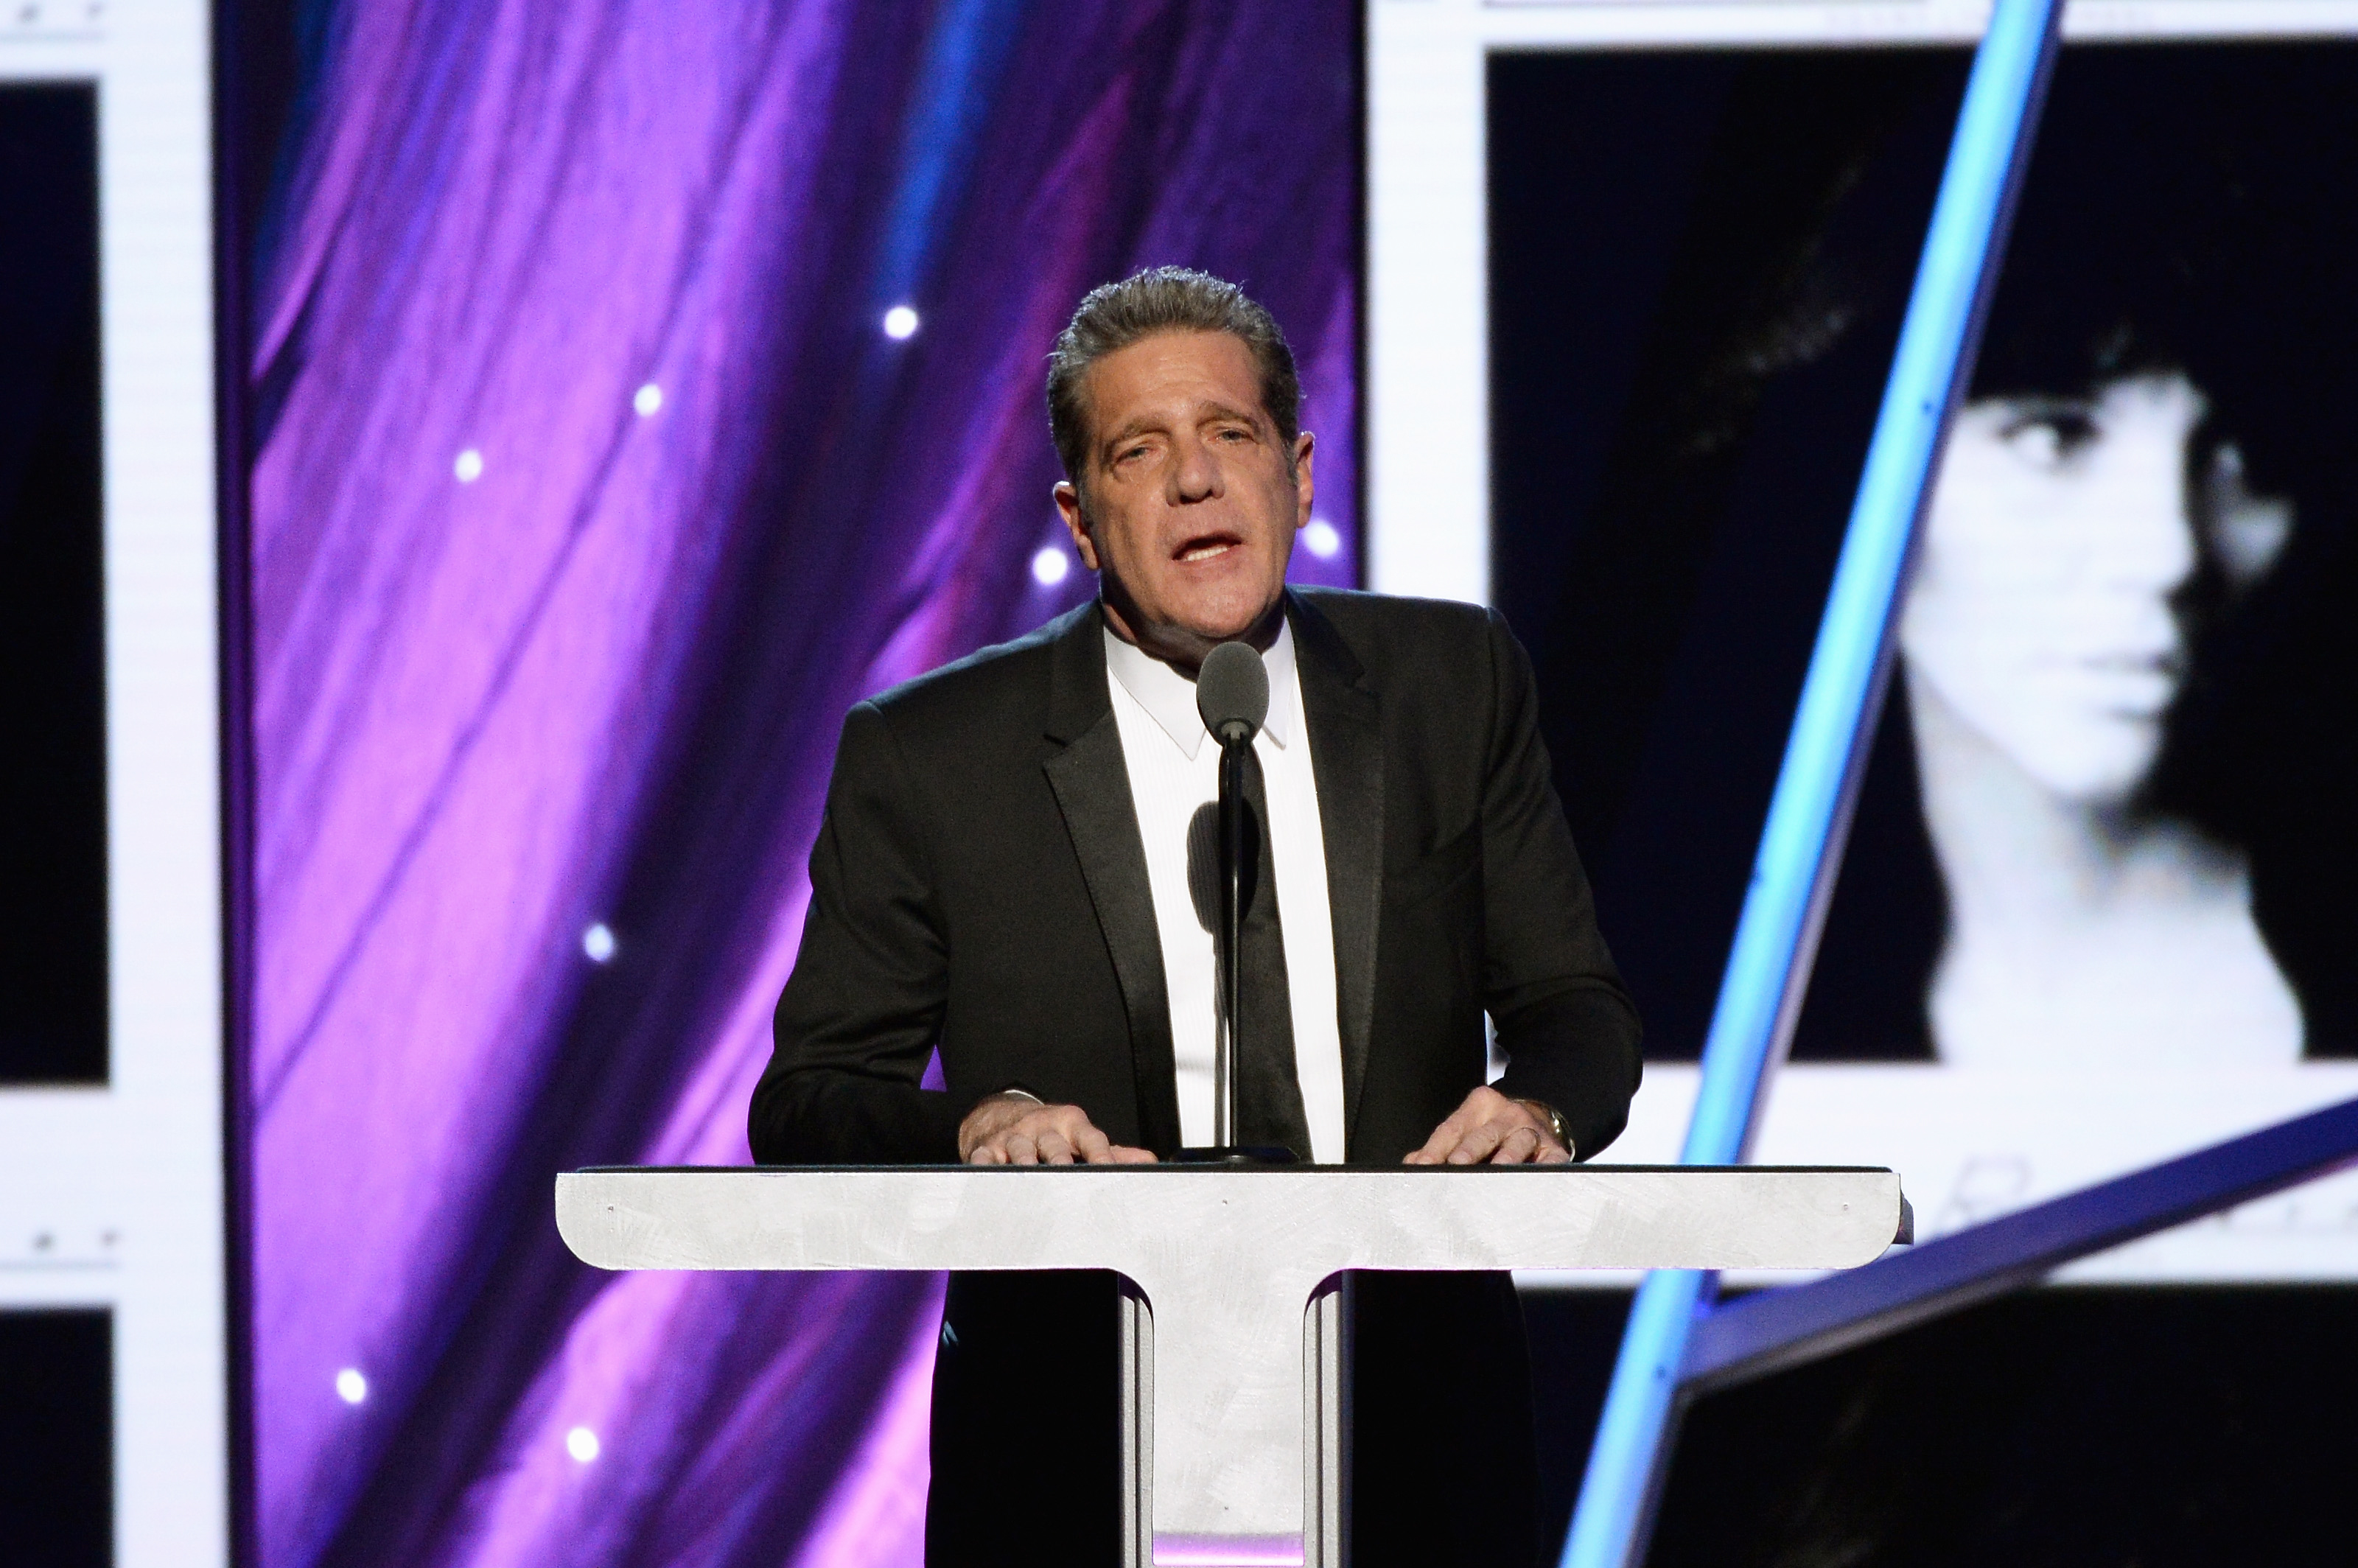 Glenn Frey speaks onstage, inducting Linda Ronstadt into the Rock And Roll Hall Of Fame, at Barclays Center in Brooklyn on April 10, 2014.